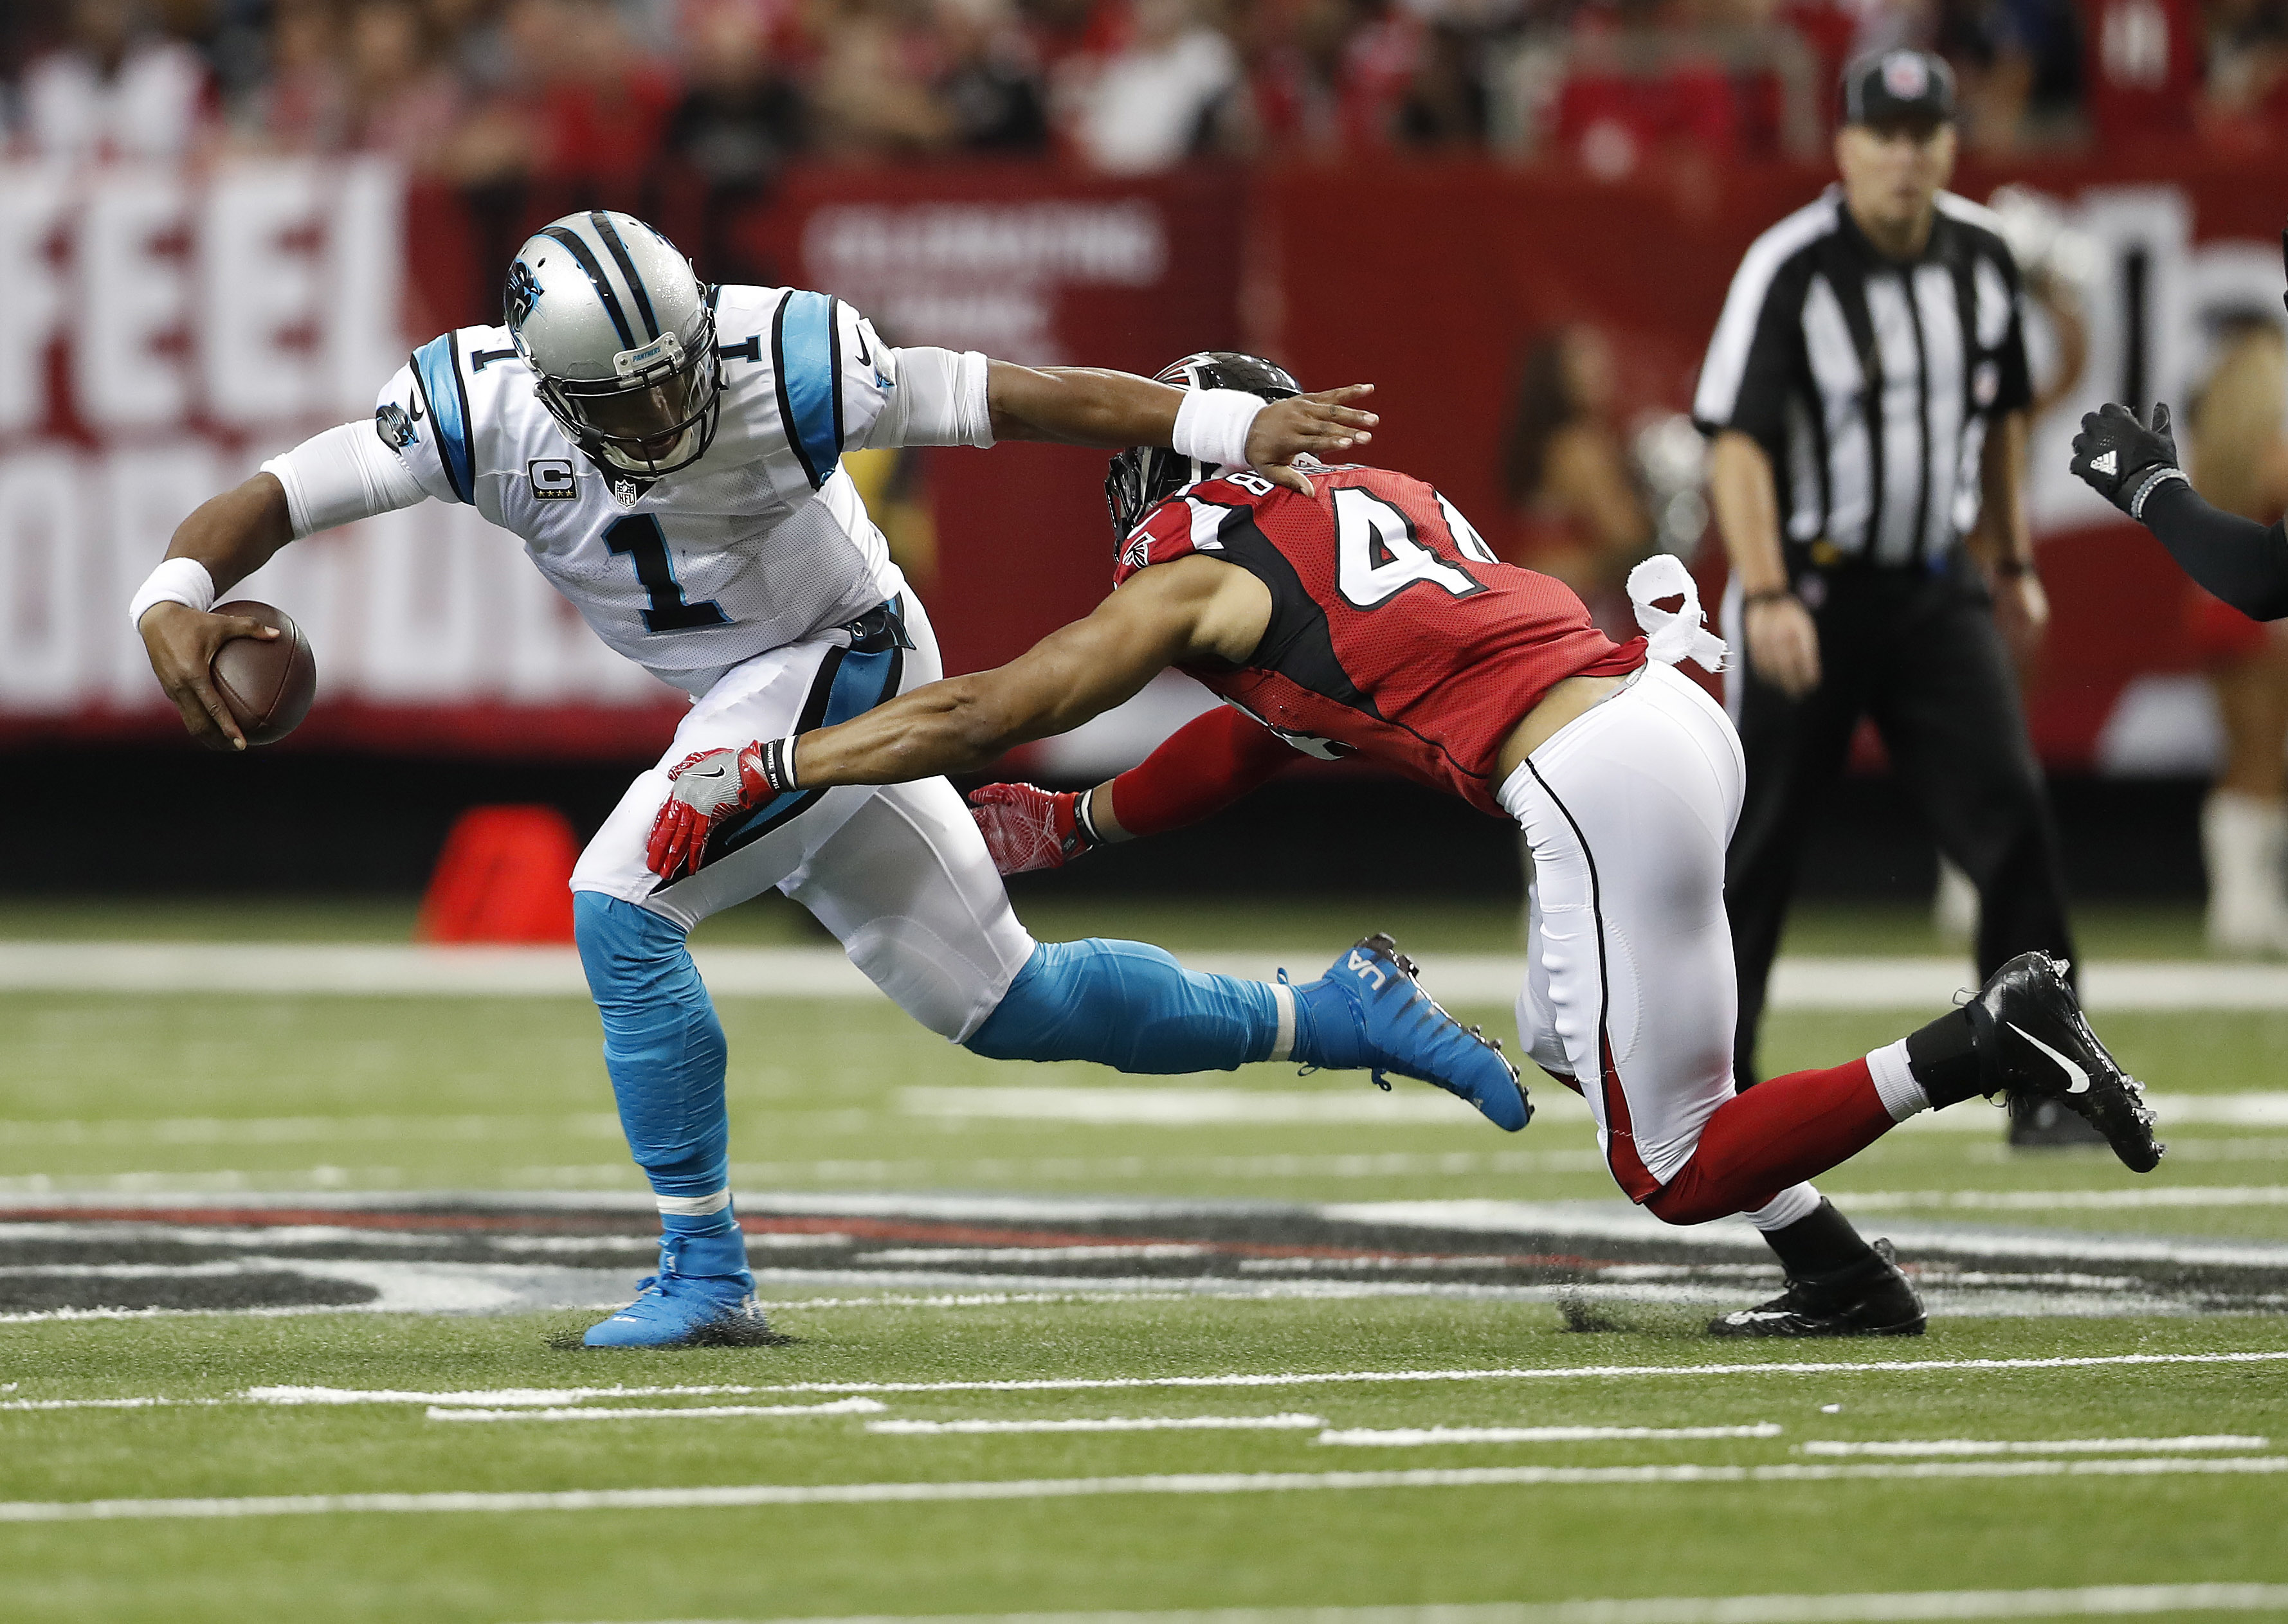 FILE - In this Oct. 2, 2016, file photo, Carolina Panthers quarterback Cam Newton (1) runs out of the pocket against Atlanta Falcons outside linebacker Vic Beasley (44) during the first half of an NFL football game, Sunday, Oct. 2, 2016, in Atlanta. Beasl